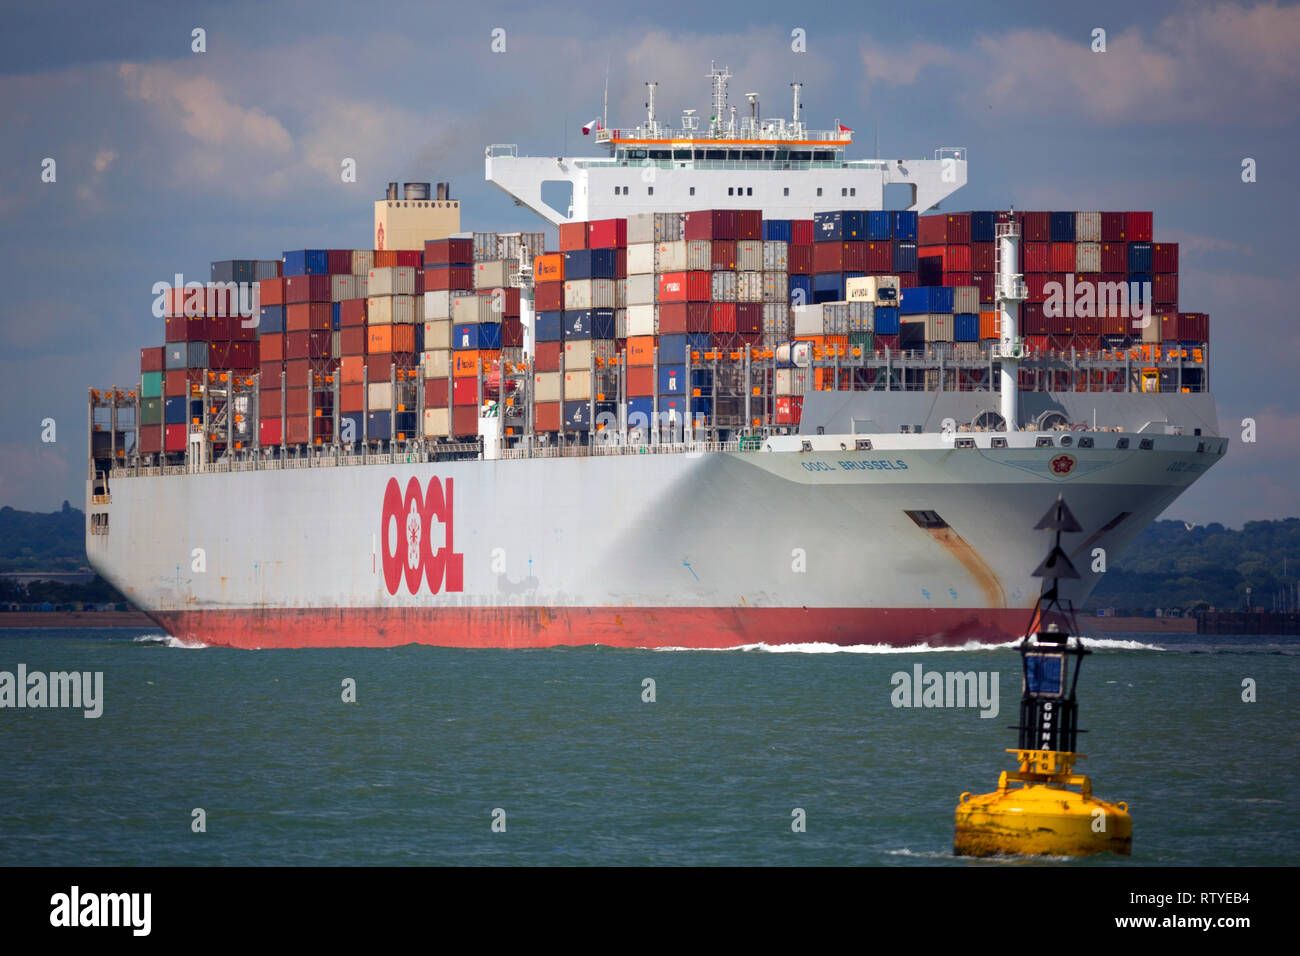 Brexit, lite,empty,Close up,OOCL, Container Ship, leaving, Southampton, Port, The Solent, Cowes, Isle of Wight, Stock Photo